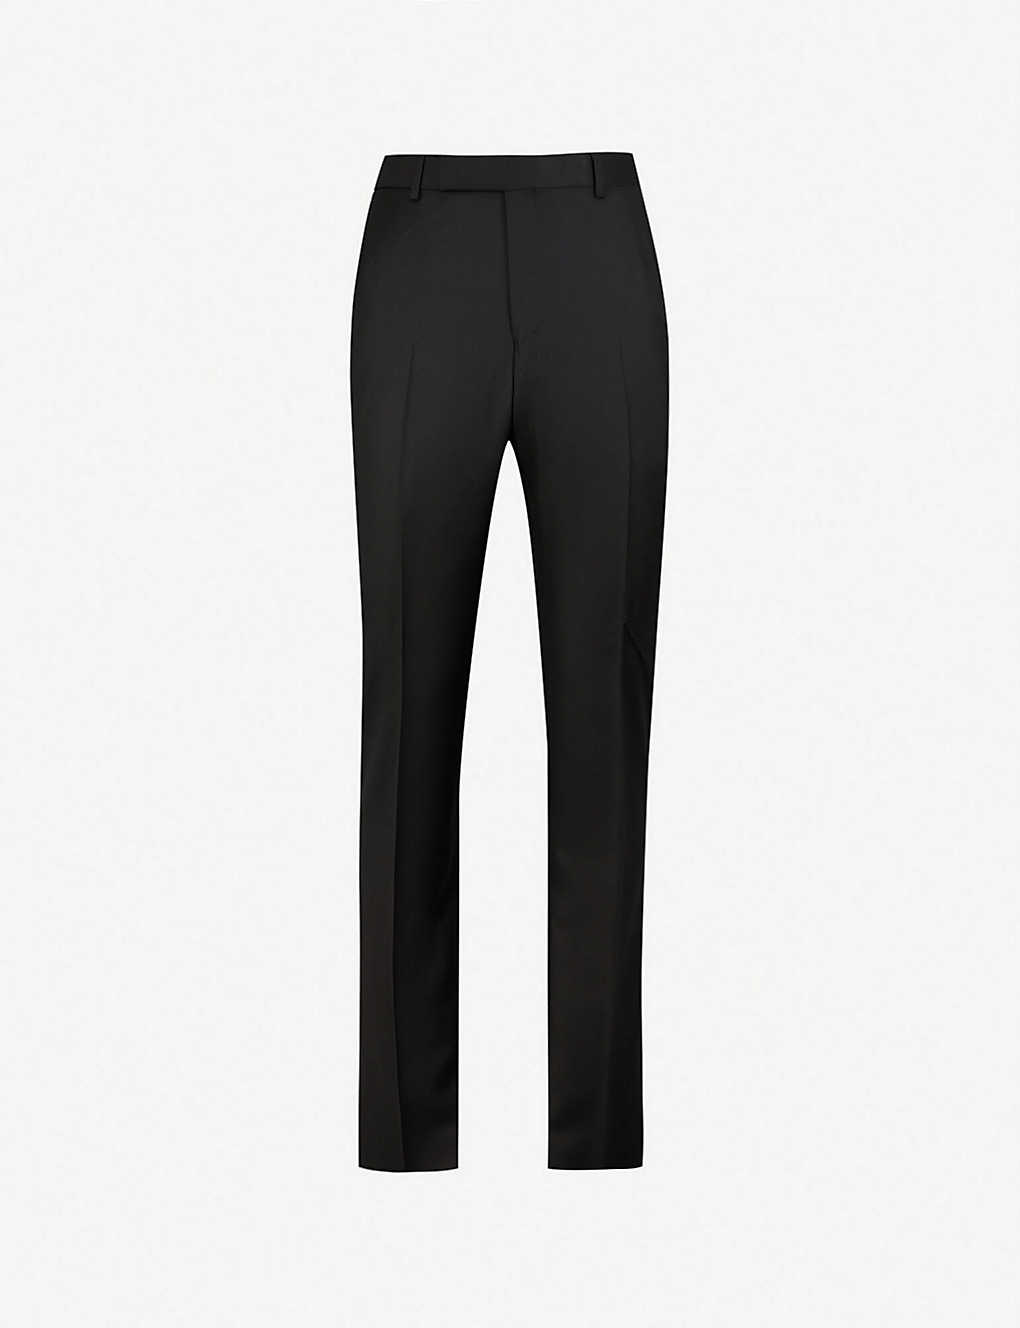 Wrap Front Pants are Trending: Here's How to Wear Them